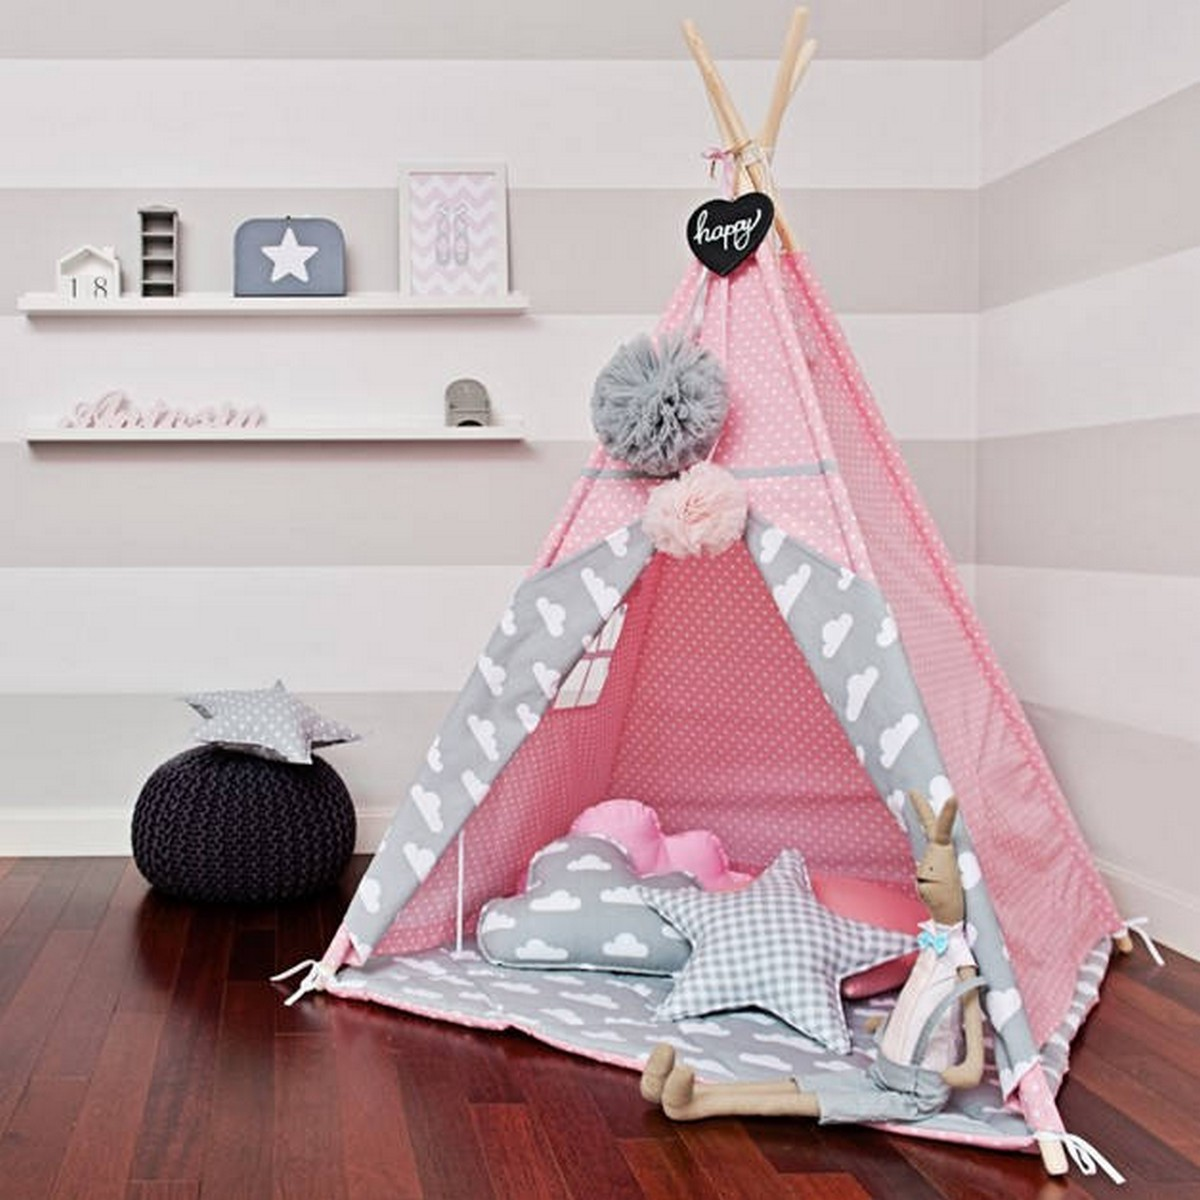 Teepees have always been a fun place to play in and a safe place to hide in – just what every kid needs!